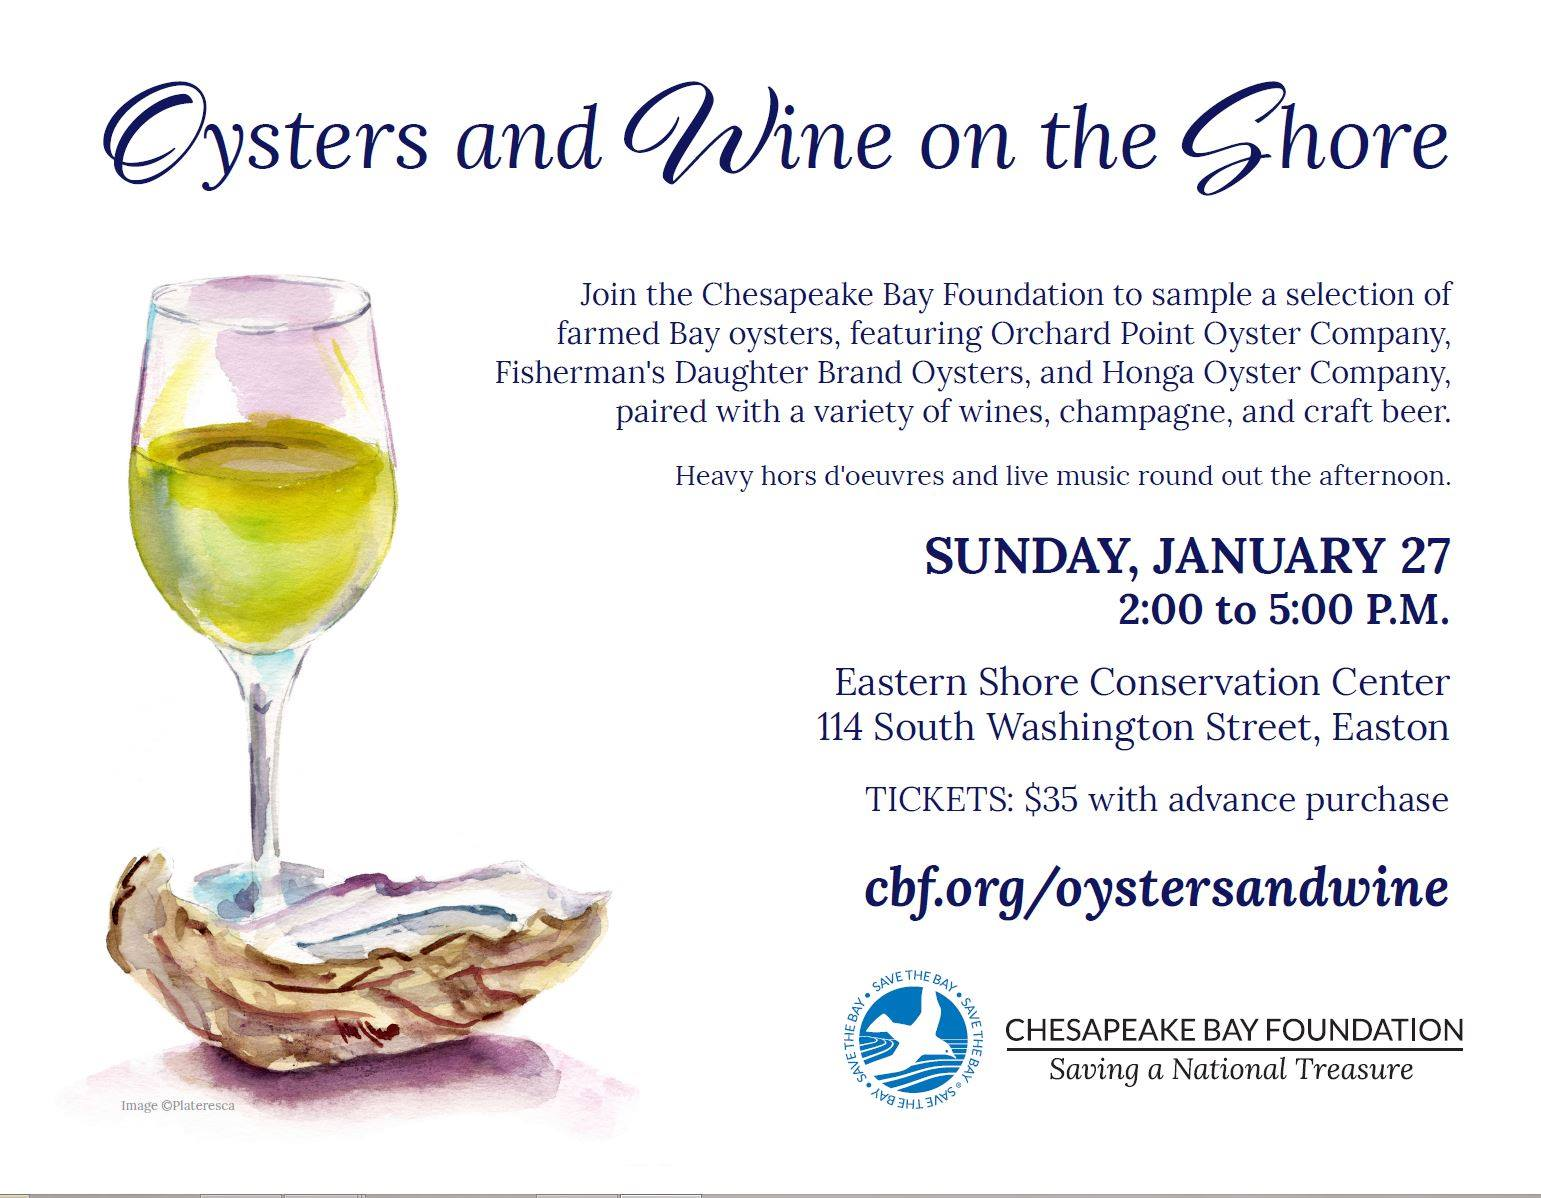 Oysters and Wine January 27 - don't miss out! Courtesy CBF